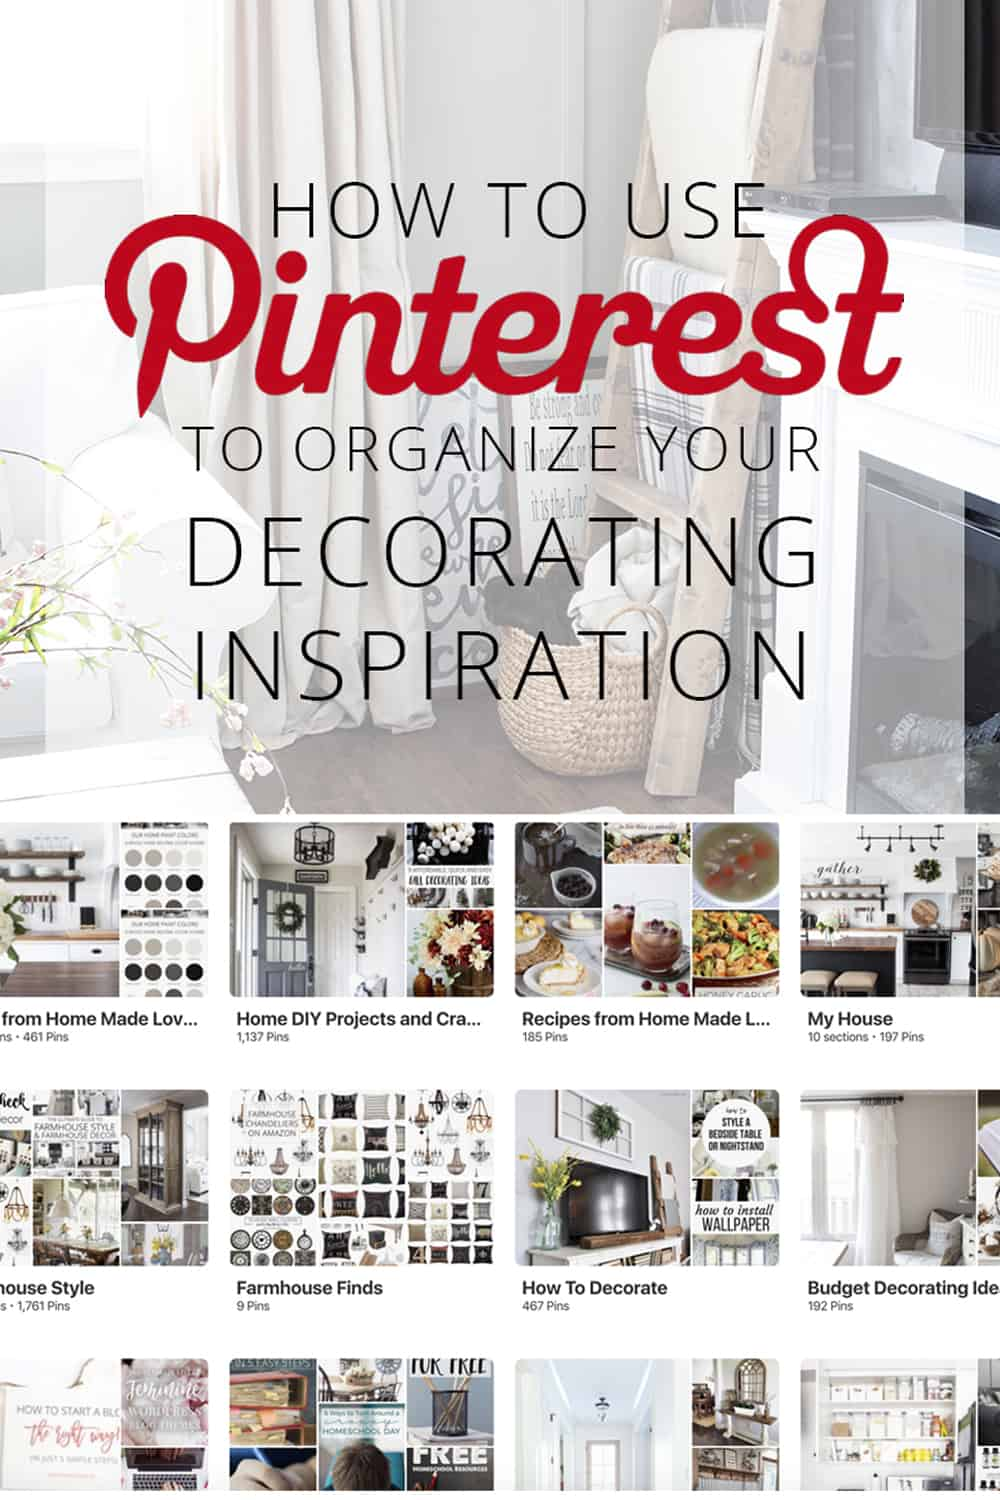 There's this reallyfabulous tool that's free to use. Here's how to use Pinterest to organize your decorating inspiration.